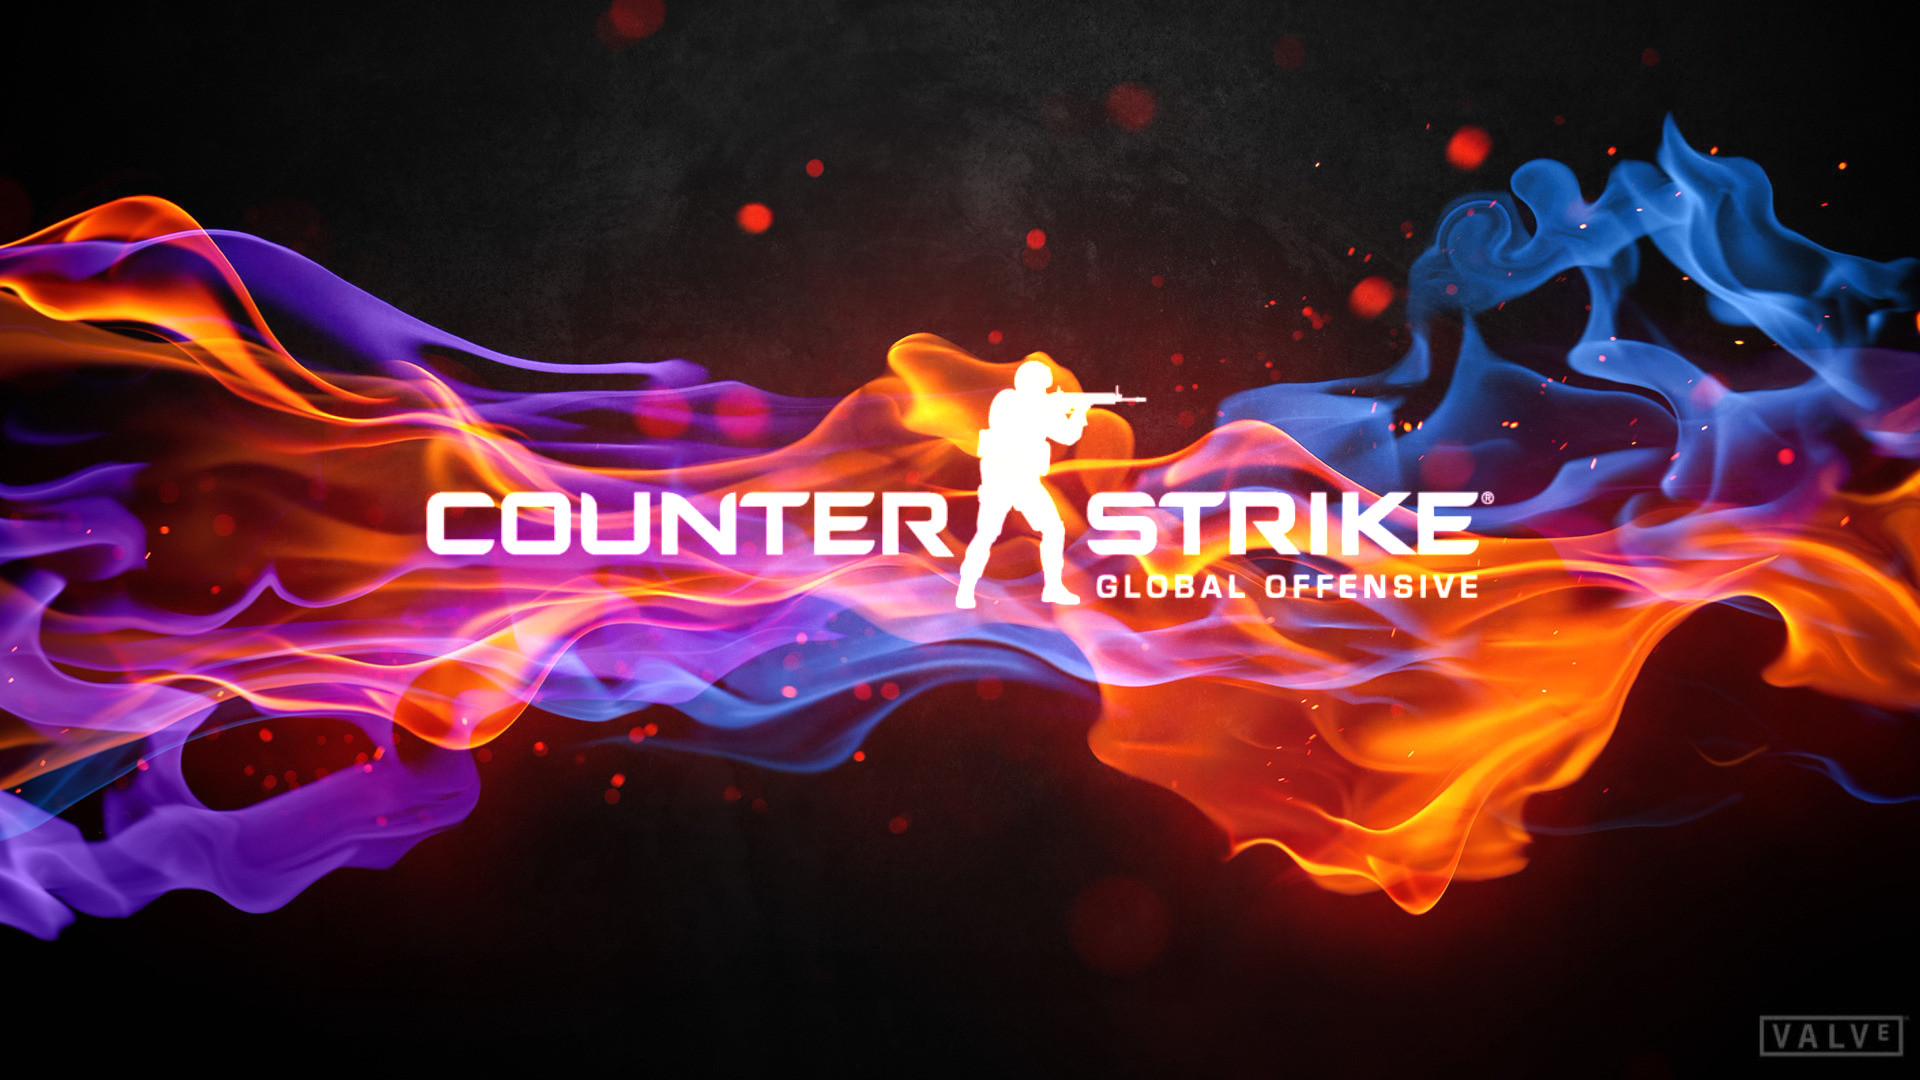 A few Team Liquid Wallpaper/Edits I made for myself while the match thought  some of you might like them. #games #globaloffensive #CSGO #counterstri…